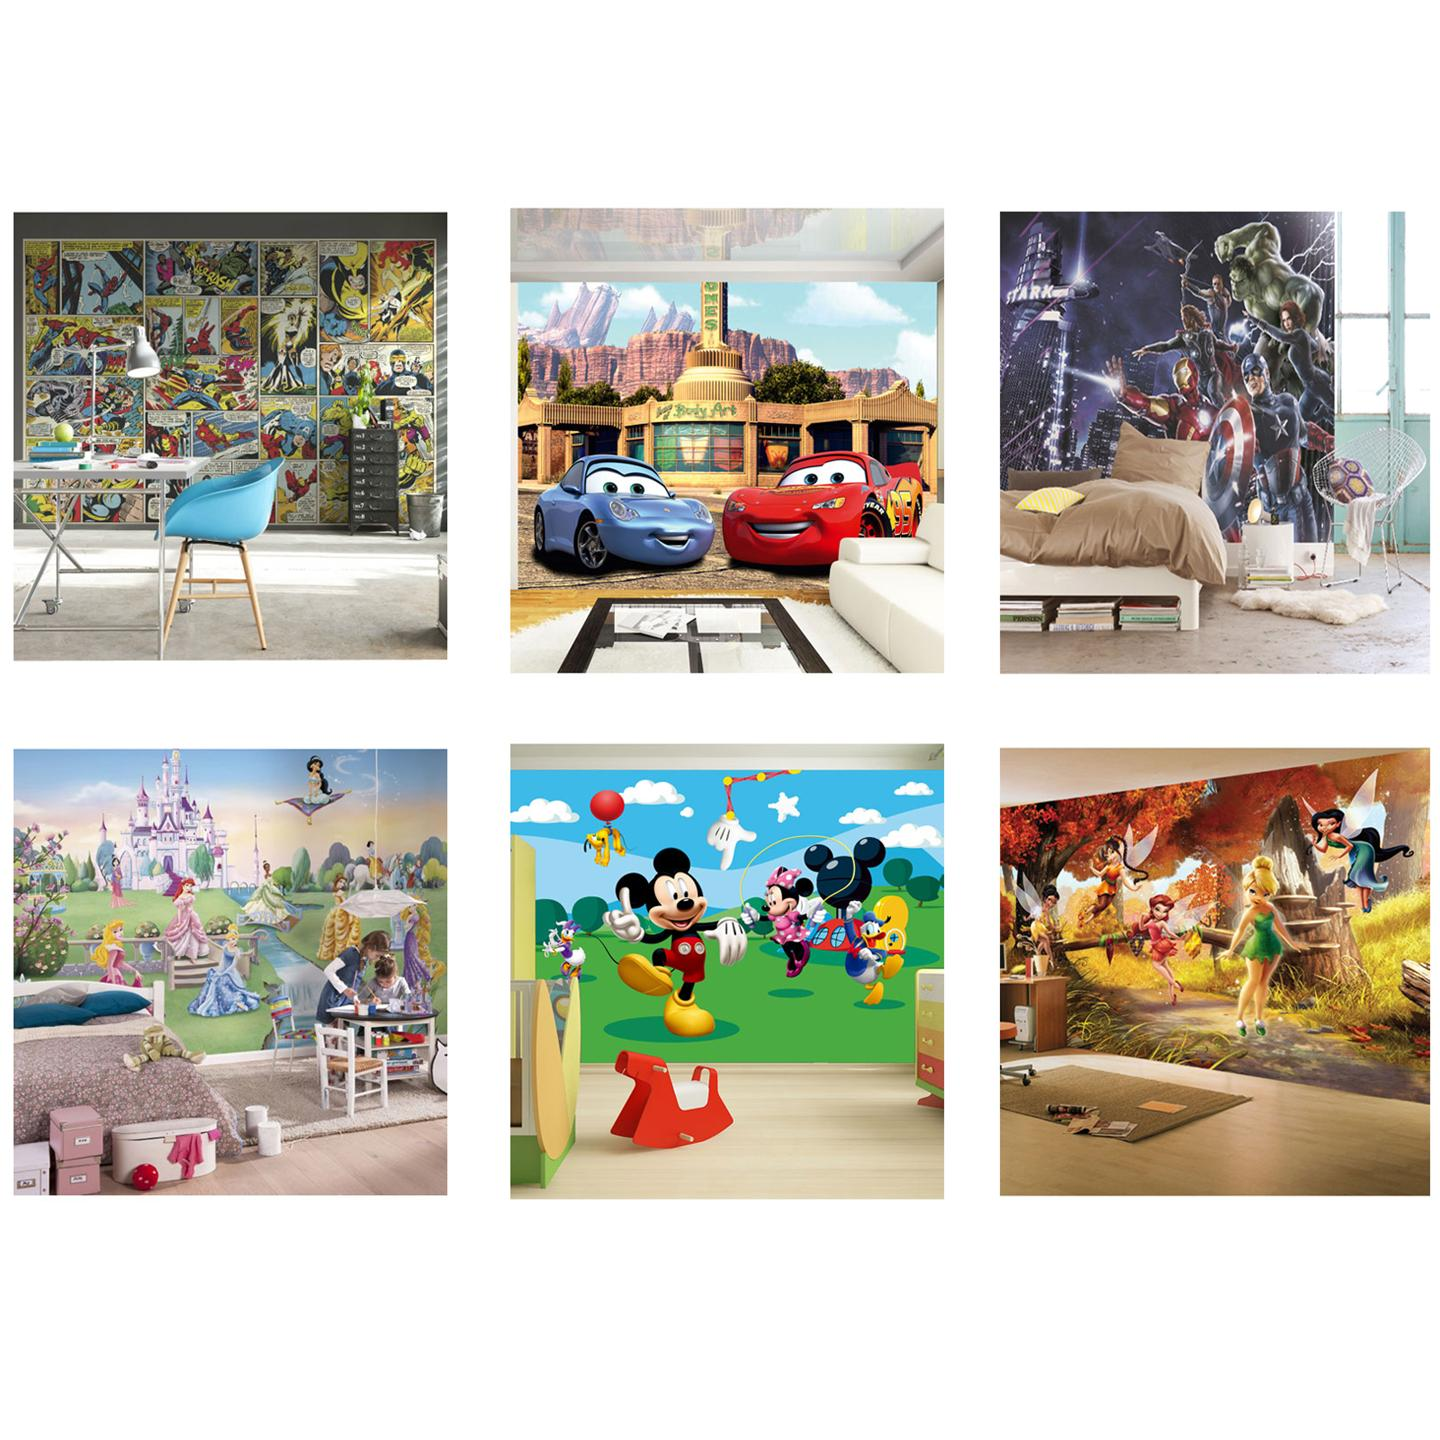 disney character large wall mural bedroom decor wallpaper new ebay